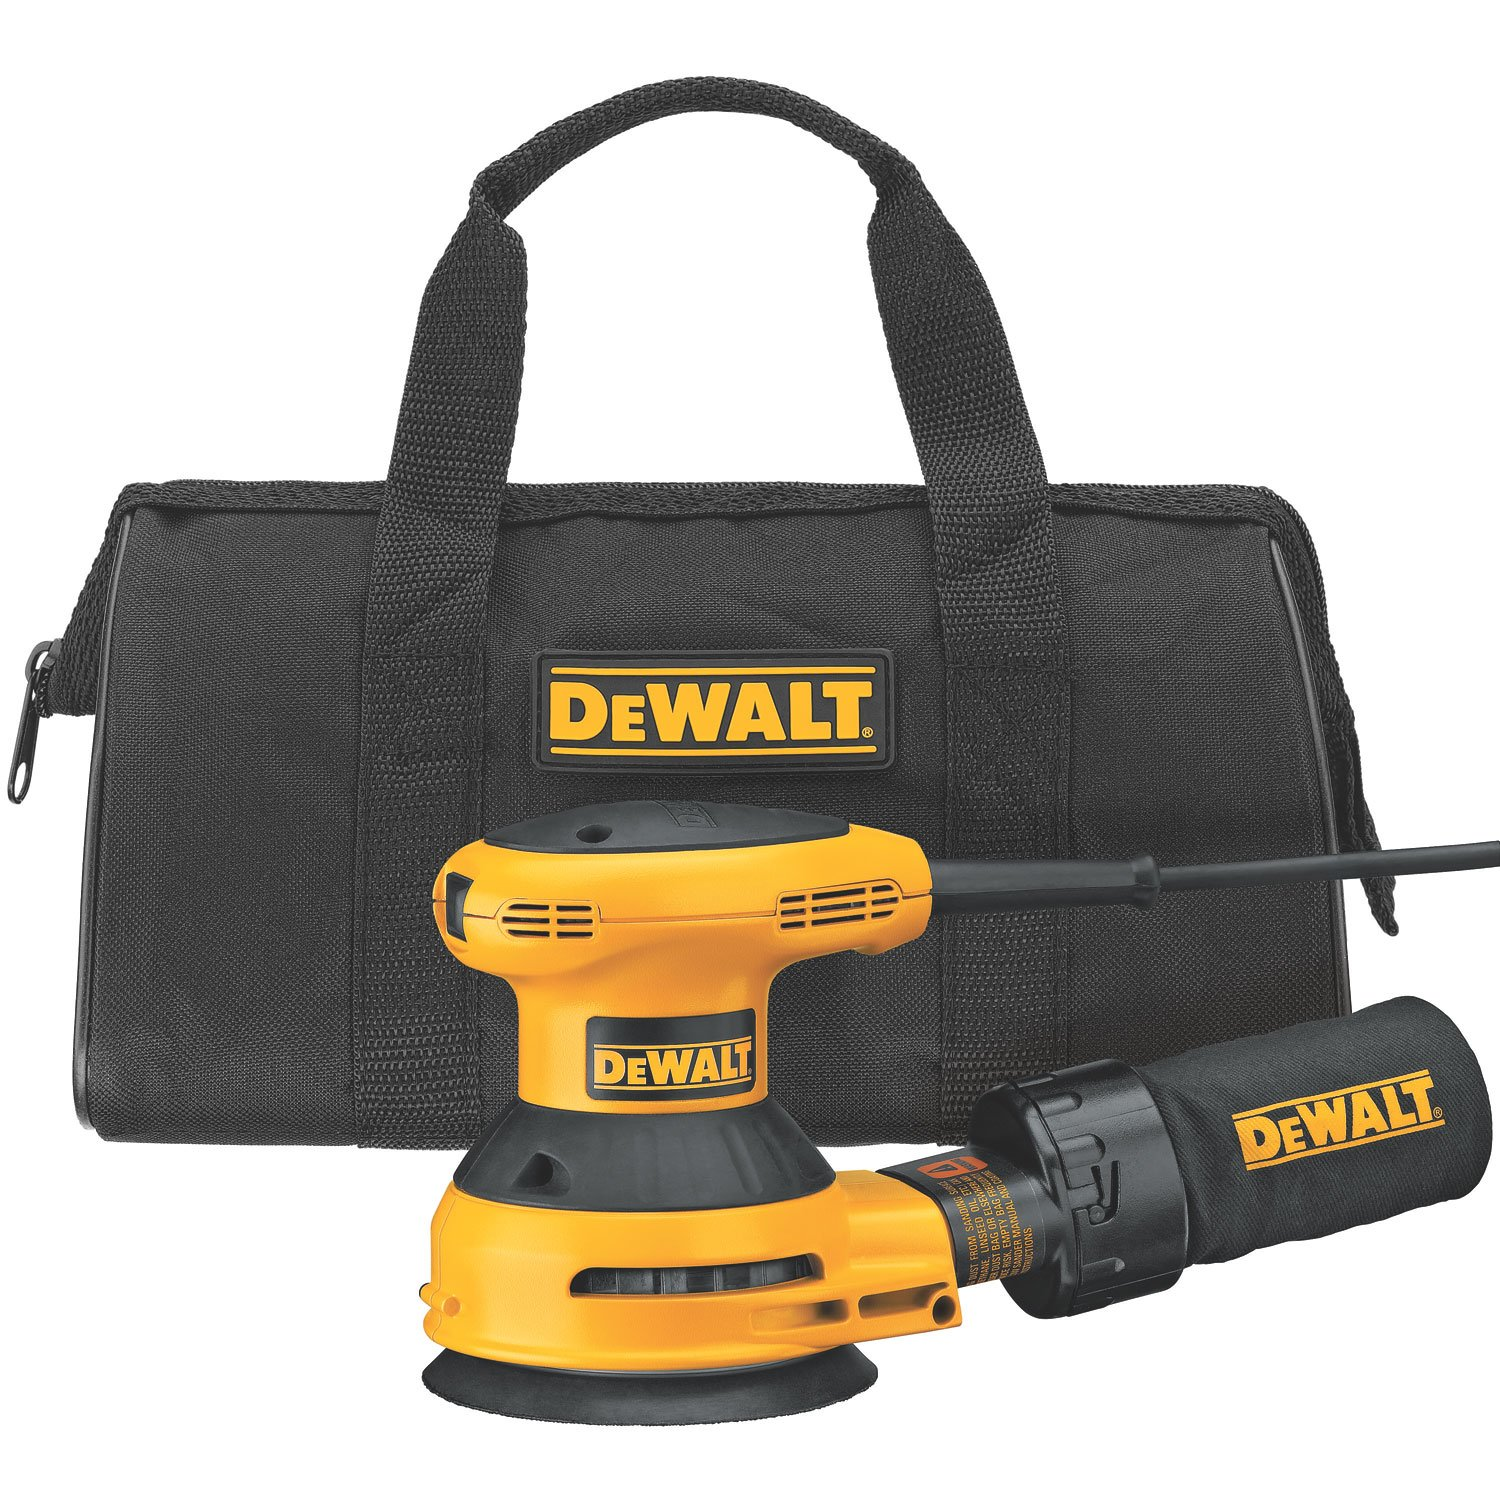 dewalt sander how to use